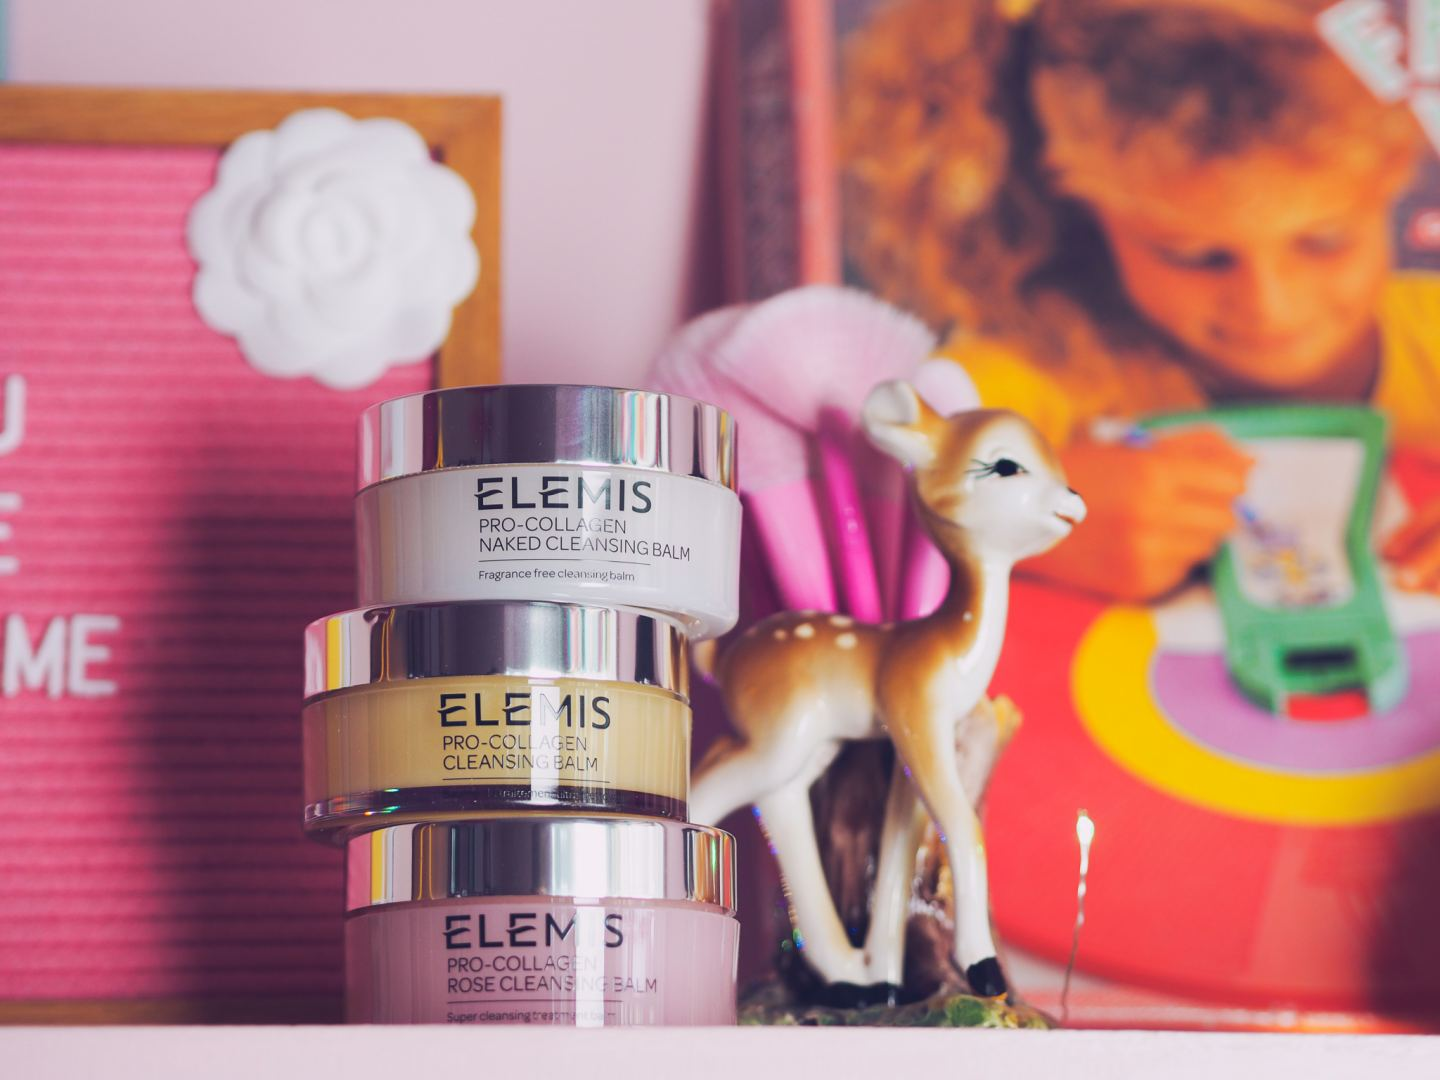 How do you use Elemis Pro Collagen cleansing balm?